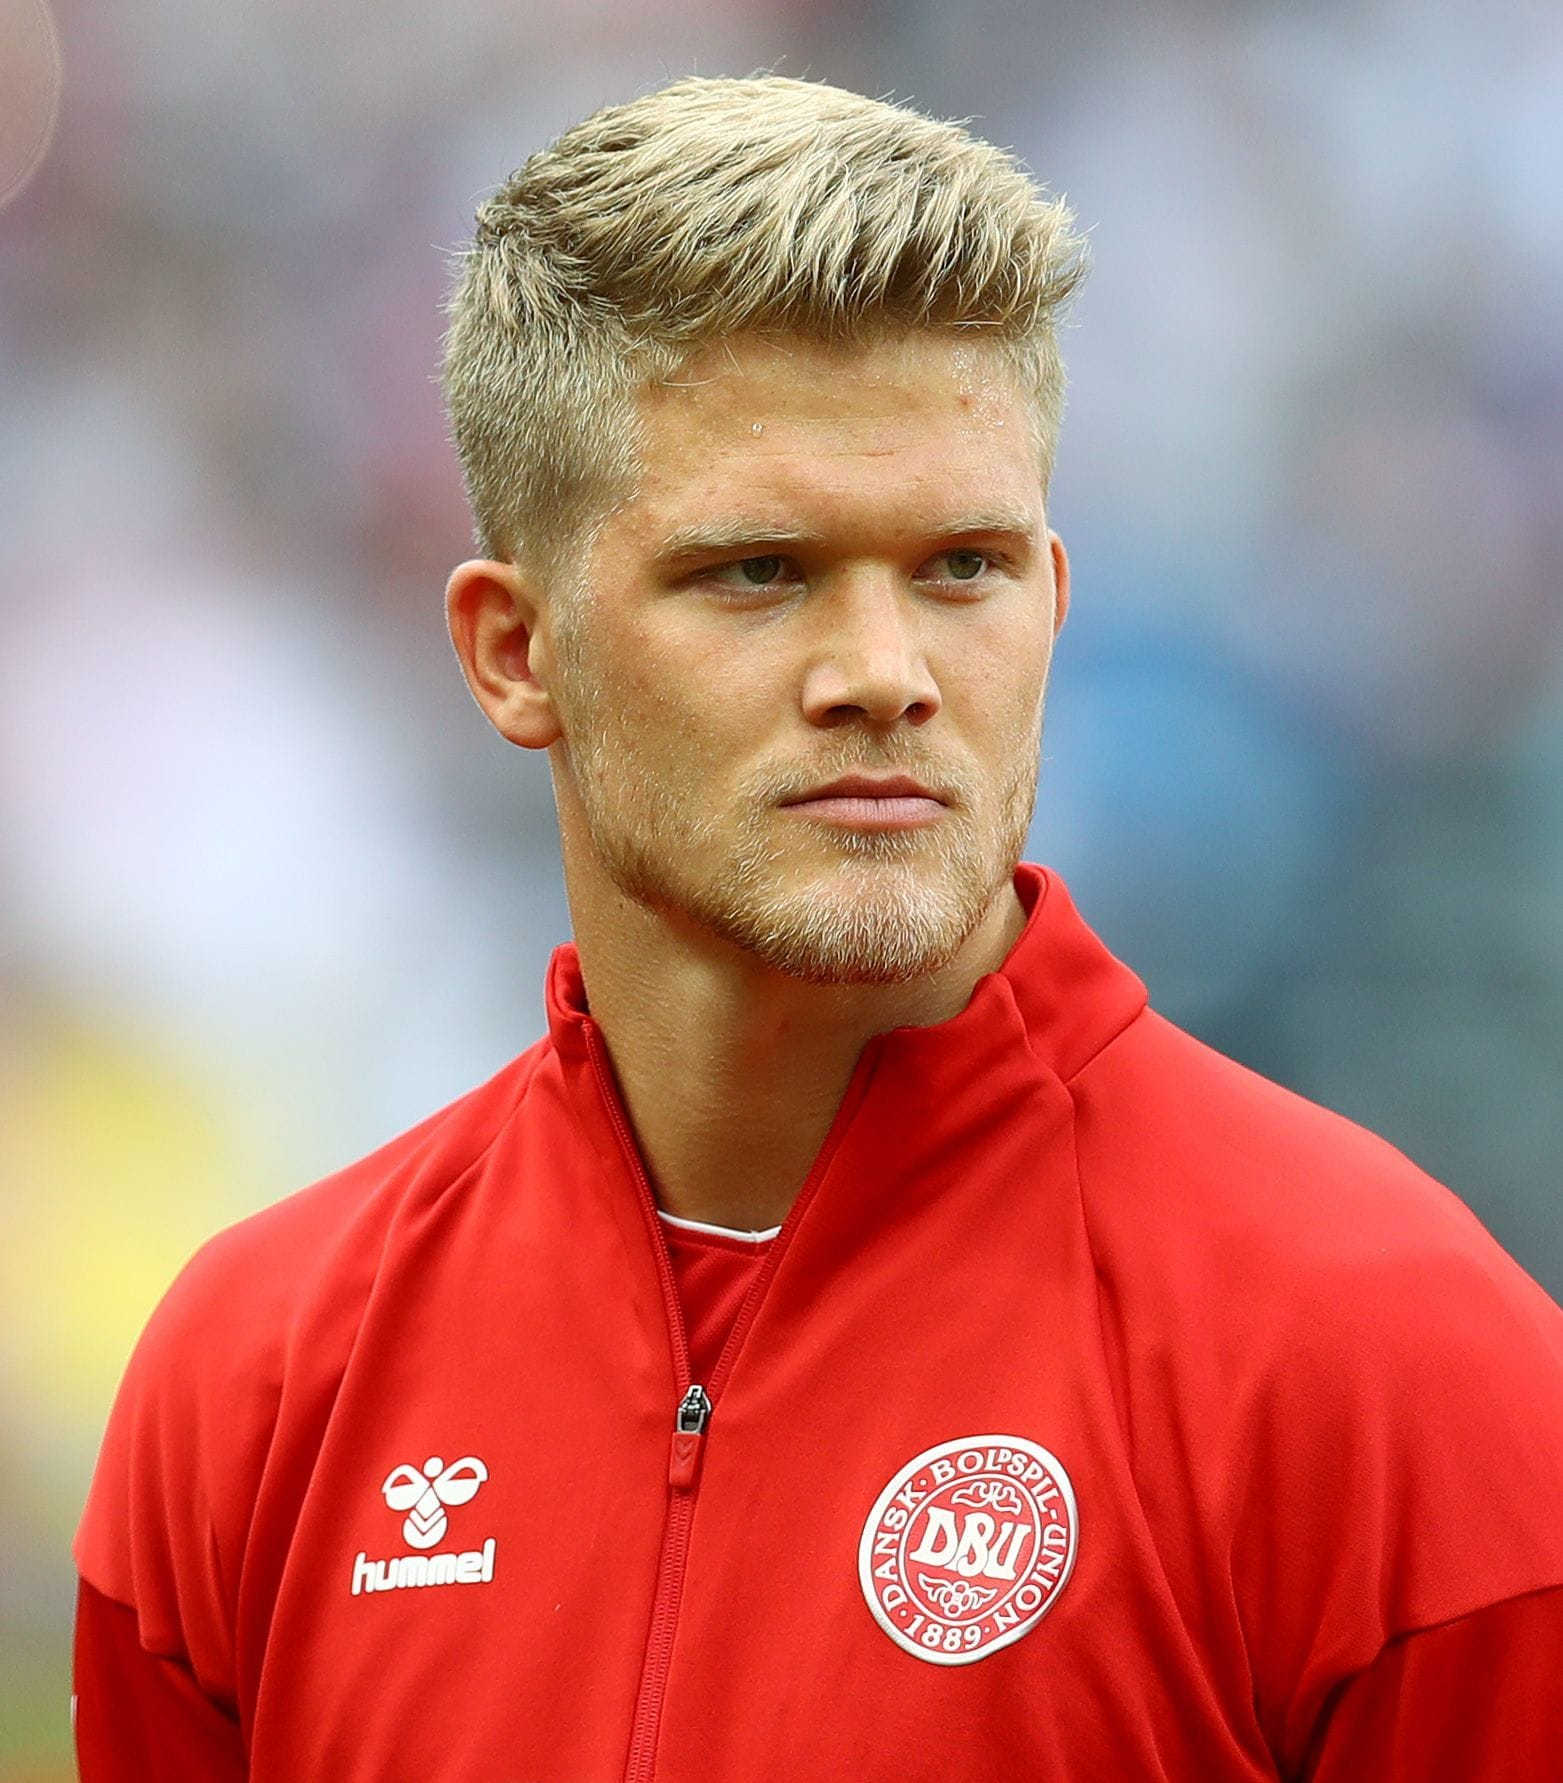 footballer hairstyles: andreas cornelius with short blonde hair with side parting swept back teamed with a blonde beard in denmark football shirt